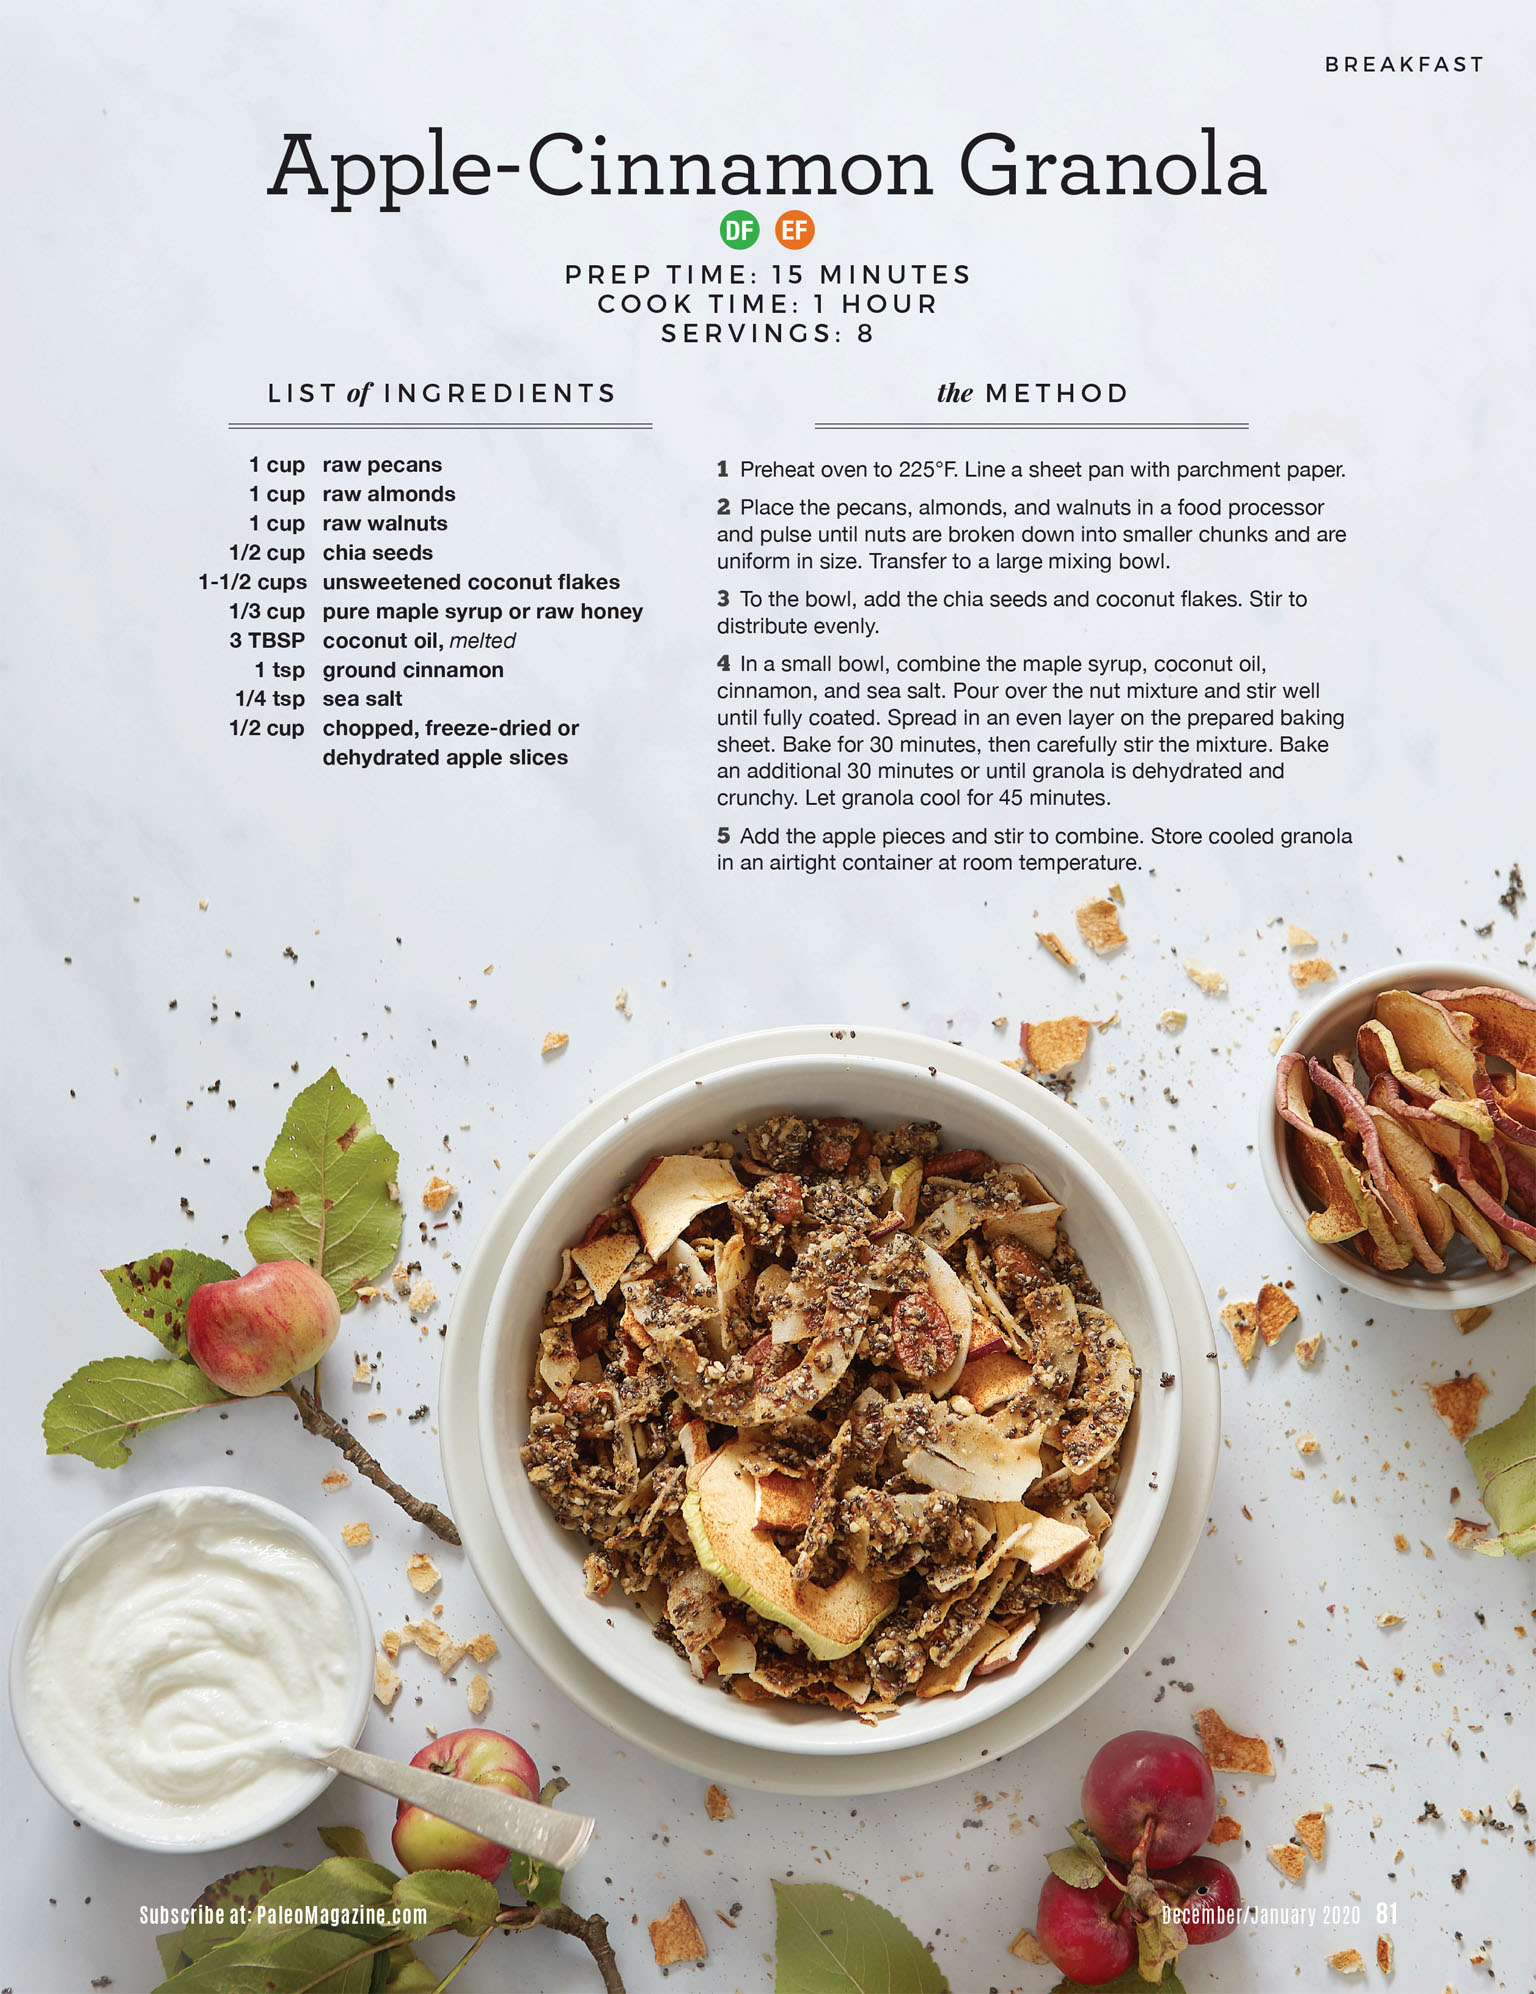 Paleo Magazine Recipe - Apple Cinnamon Granola - Savannah Wishart